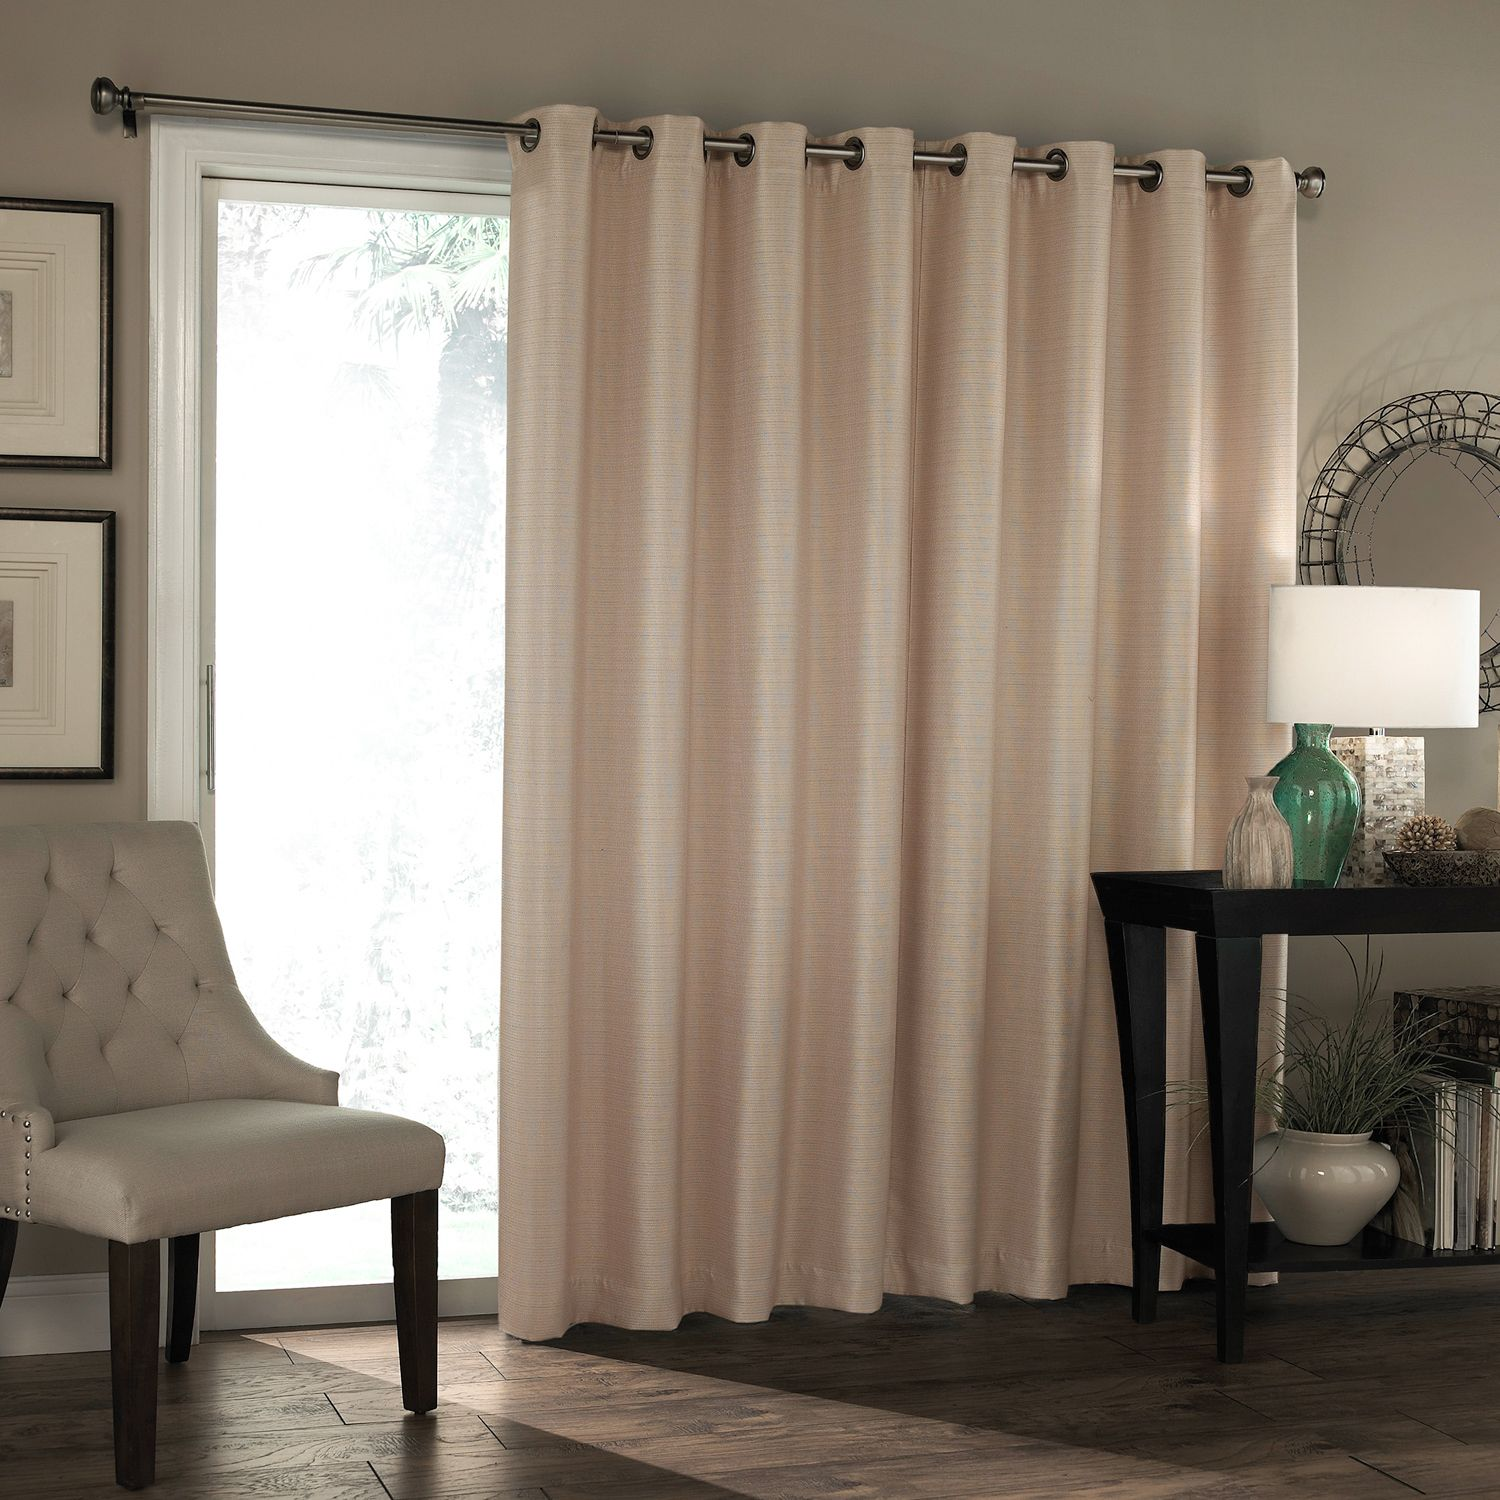 Marvelous Eclipse Bryson Thermaweave Blackout Patio Door Curtain